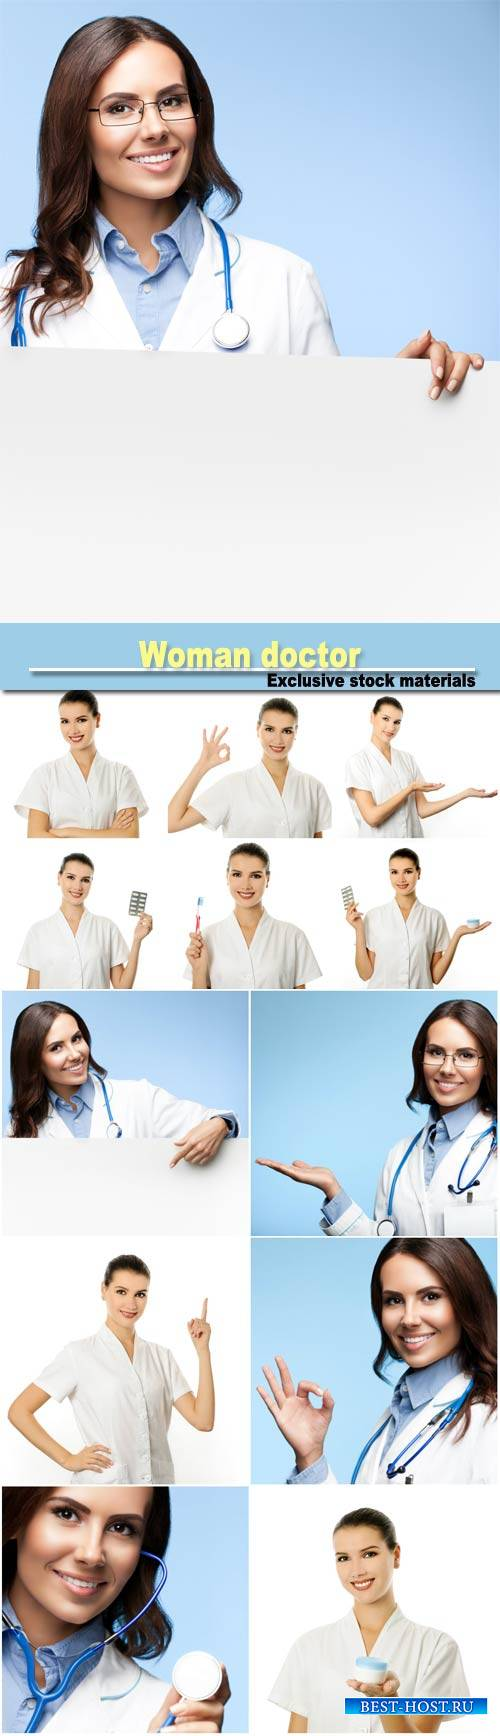 Woman doctor in different positions